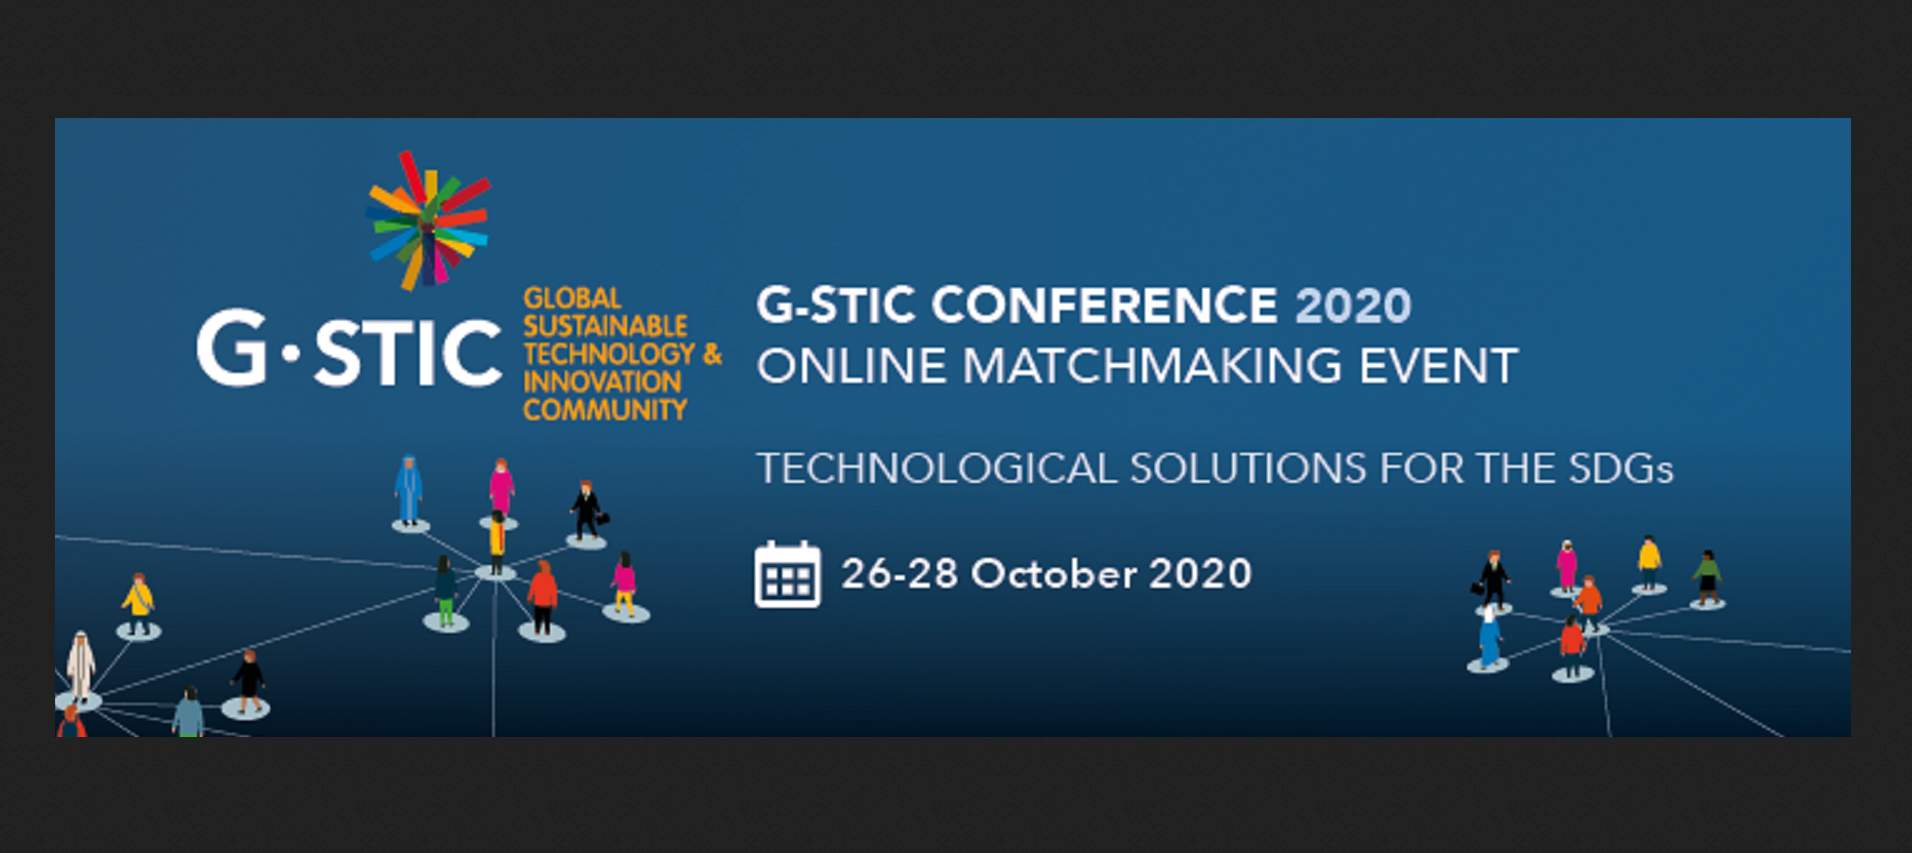 g-stic-2020-online-matchmaking-event